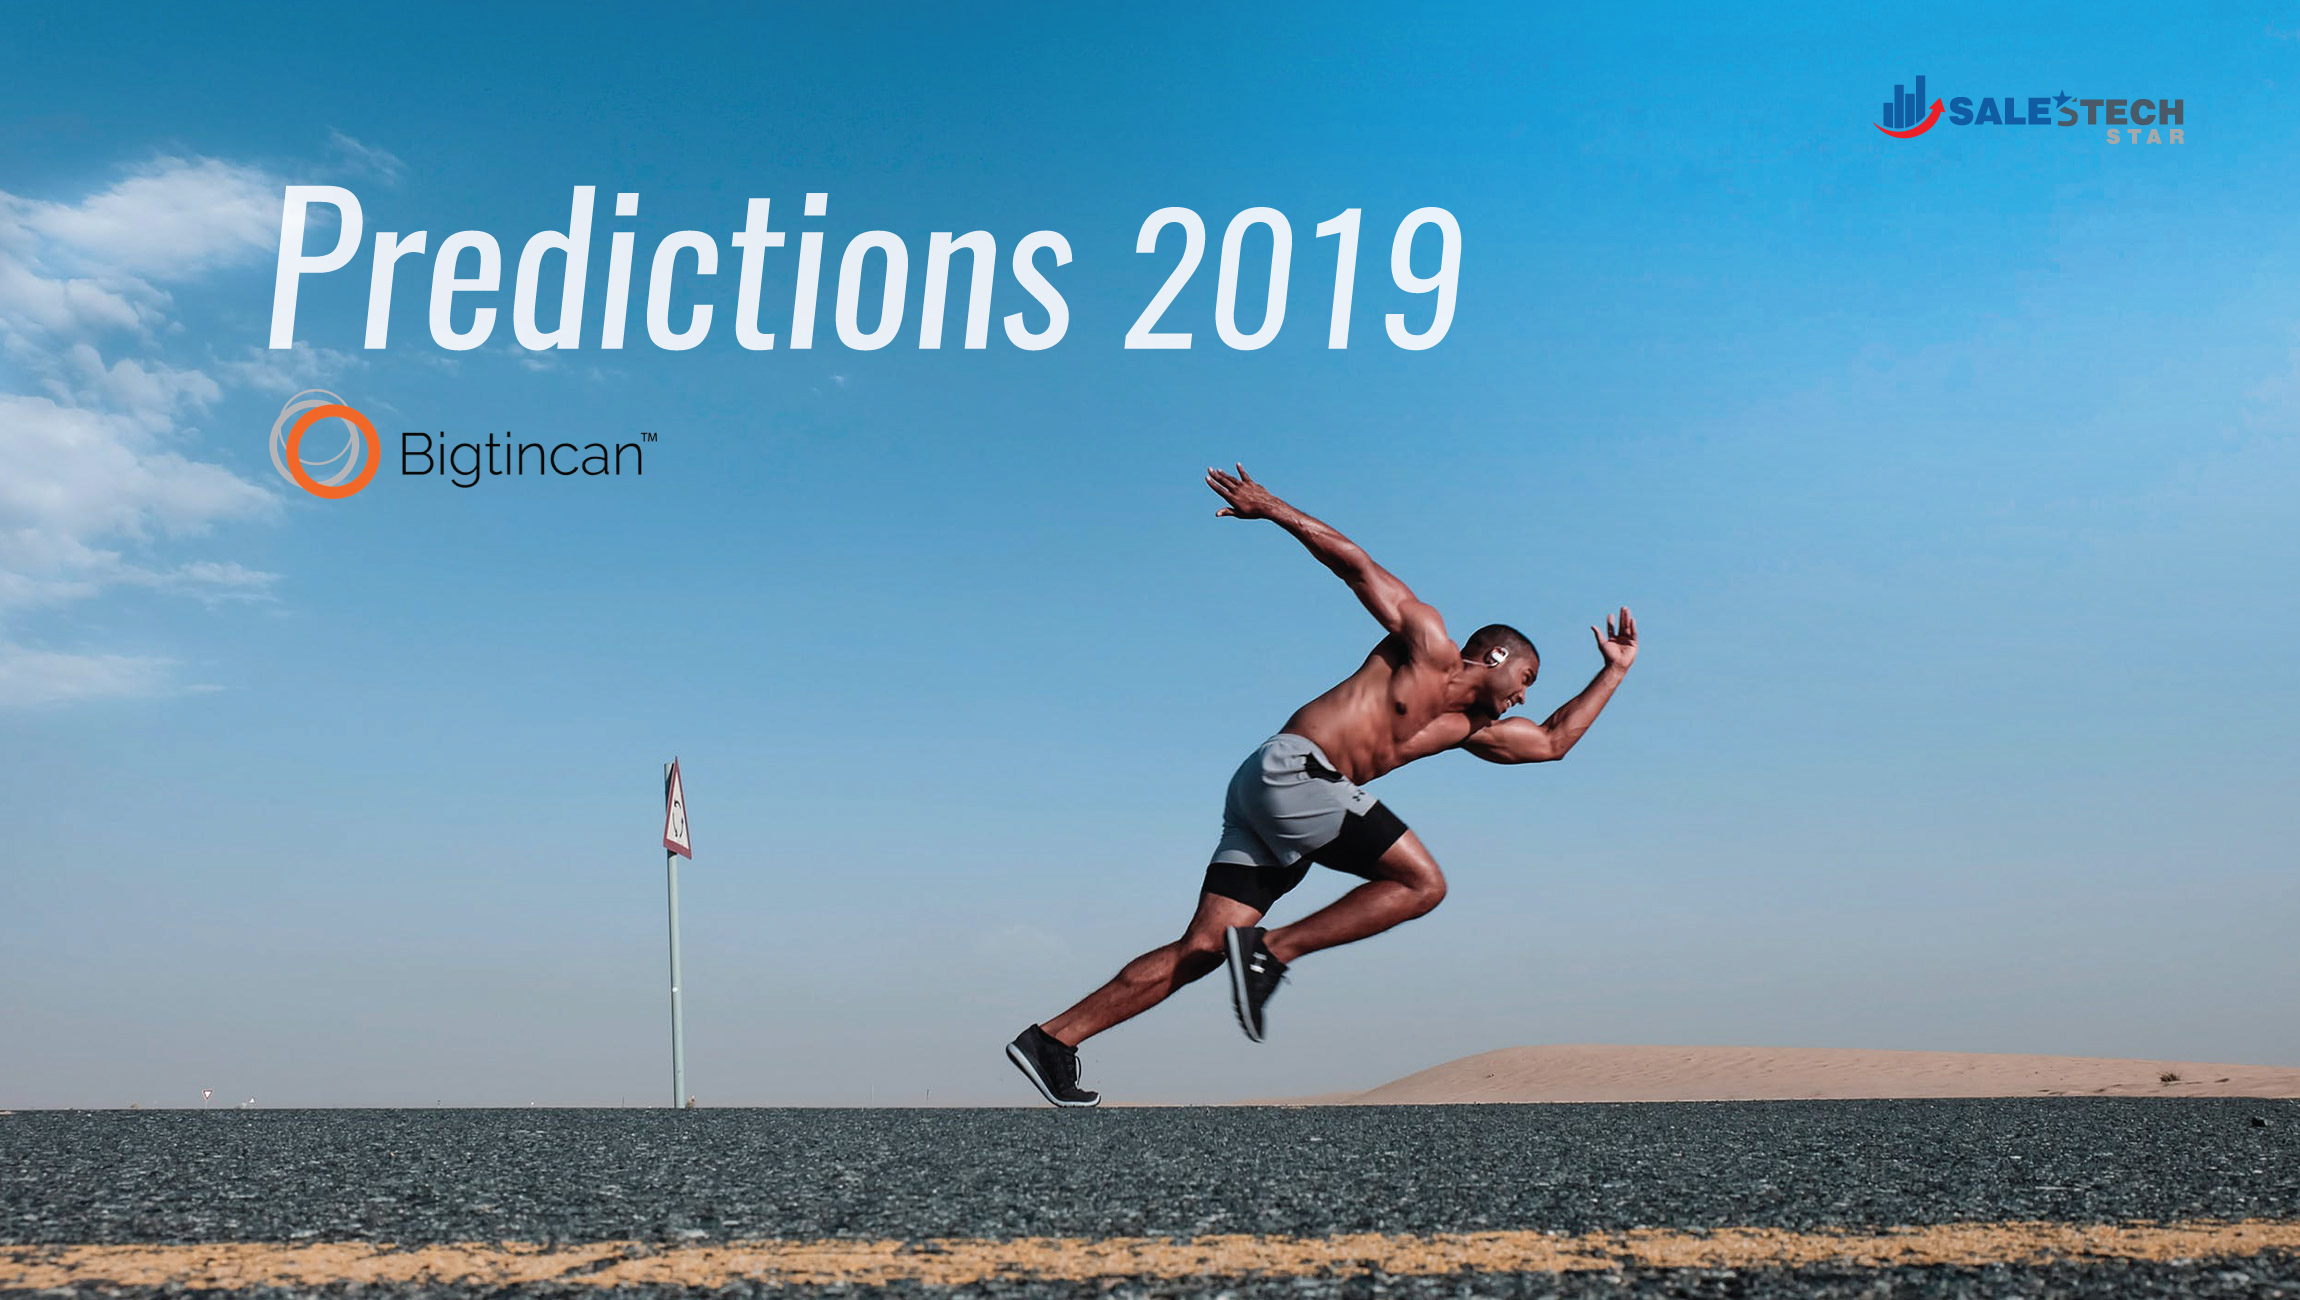 Salestech Predictions 2019: Bigtincan CEO on Sales Enablement and Salesforce Technologies